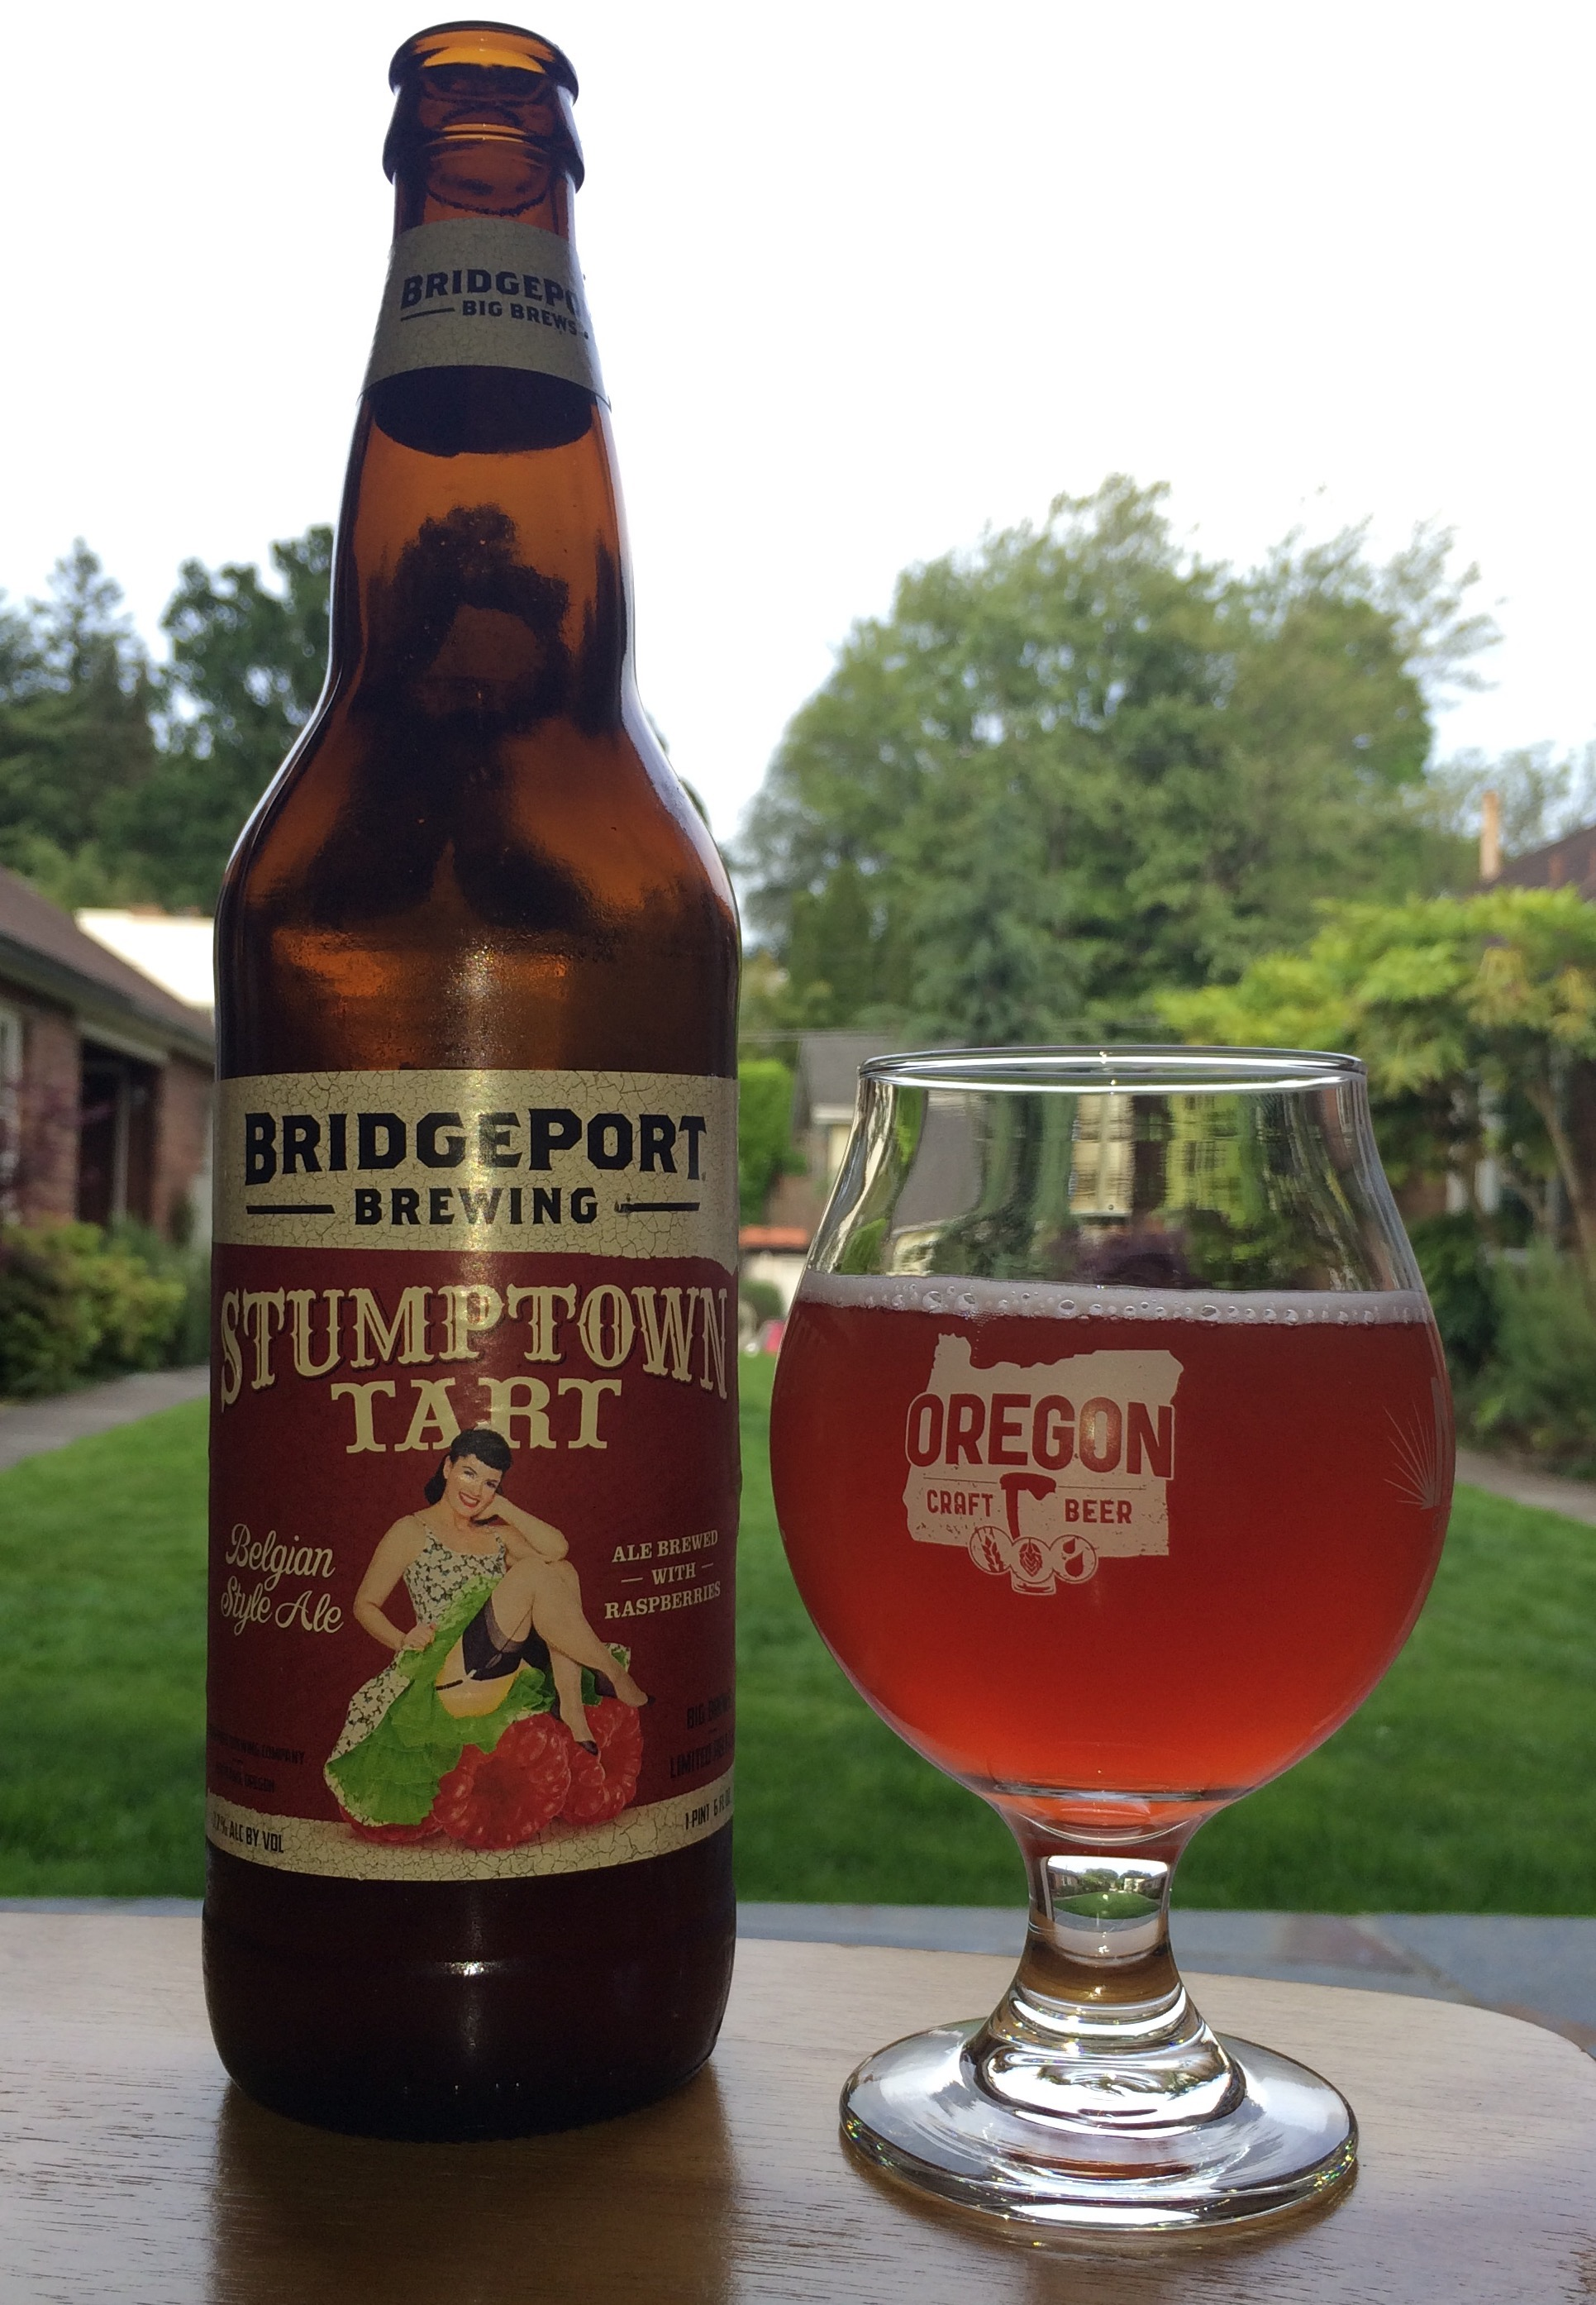 2015 BridgePort Brewing Stumptown Tart Belgian Style Ale with Raspberries